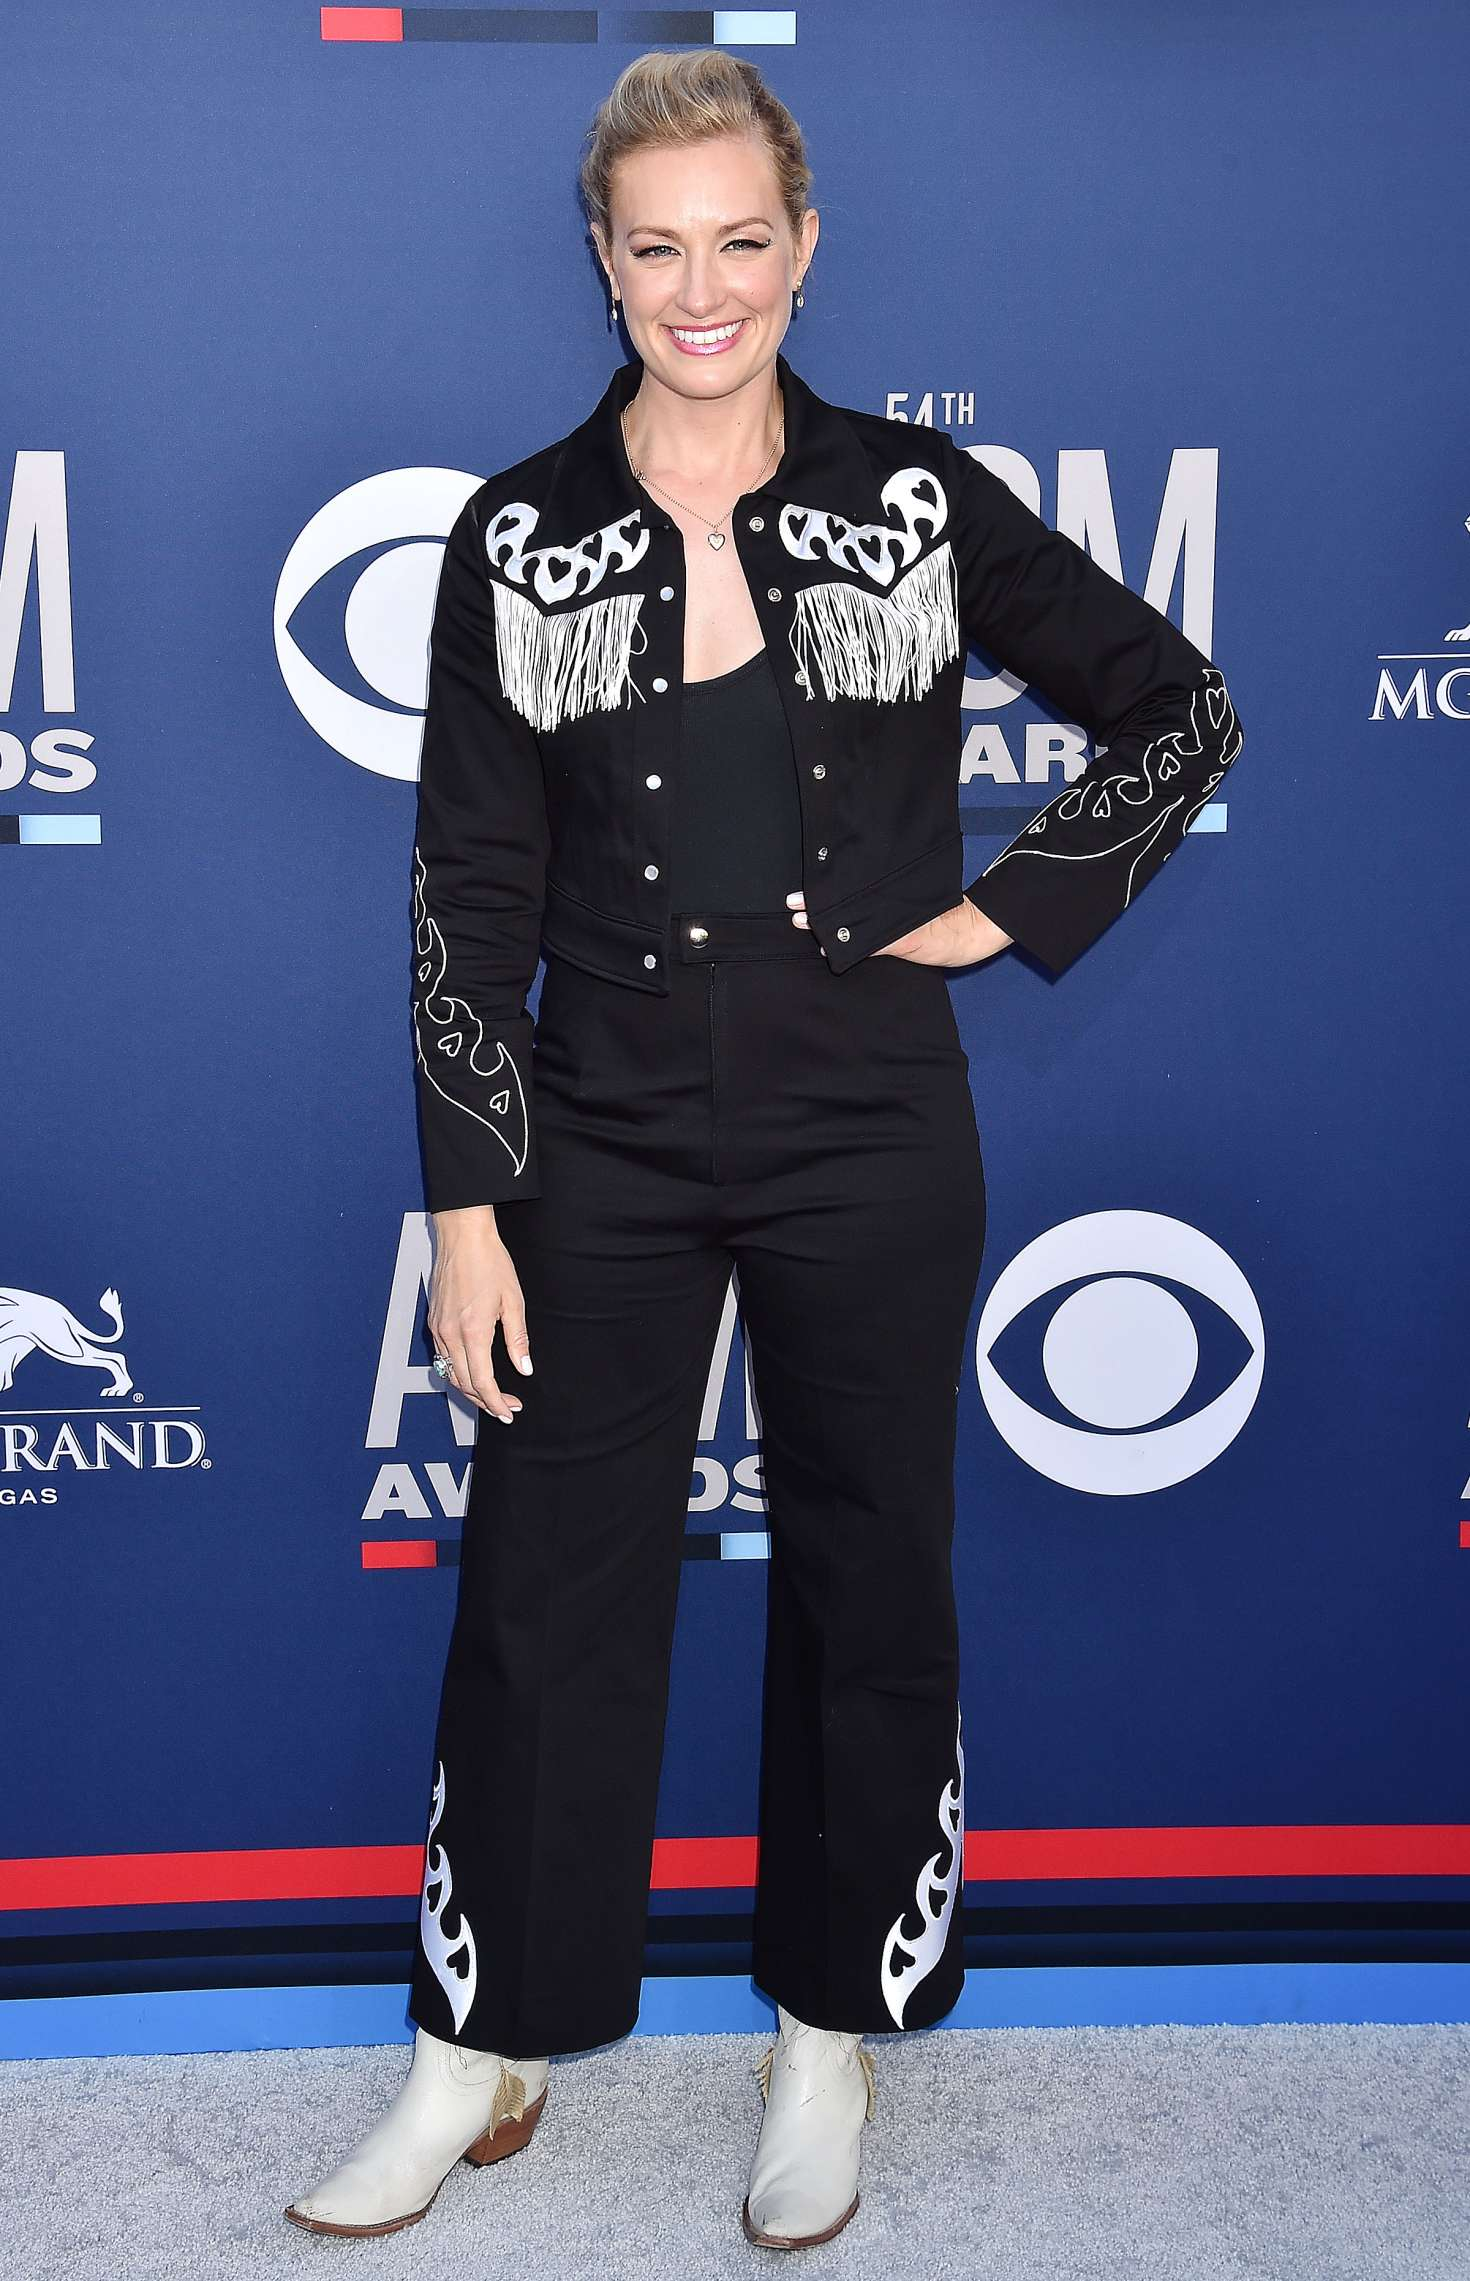 Beth Behrs 2019 : Beth Behrs: 2019 Academy of Country Music Awards -04